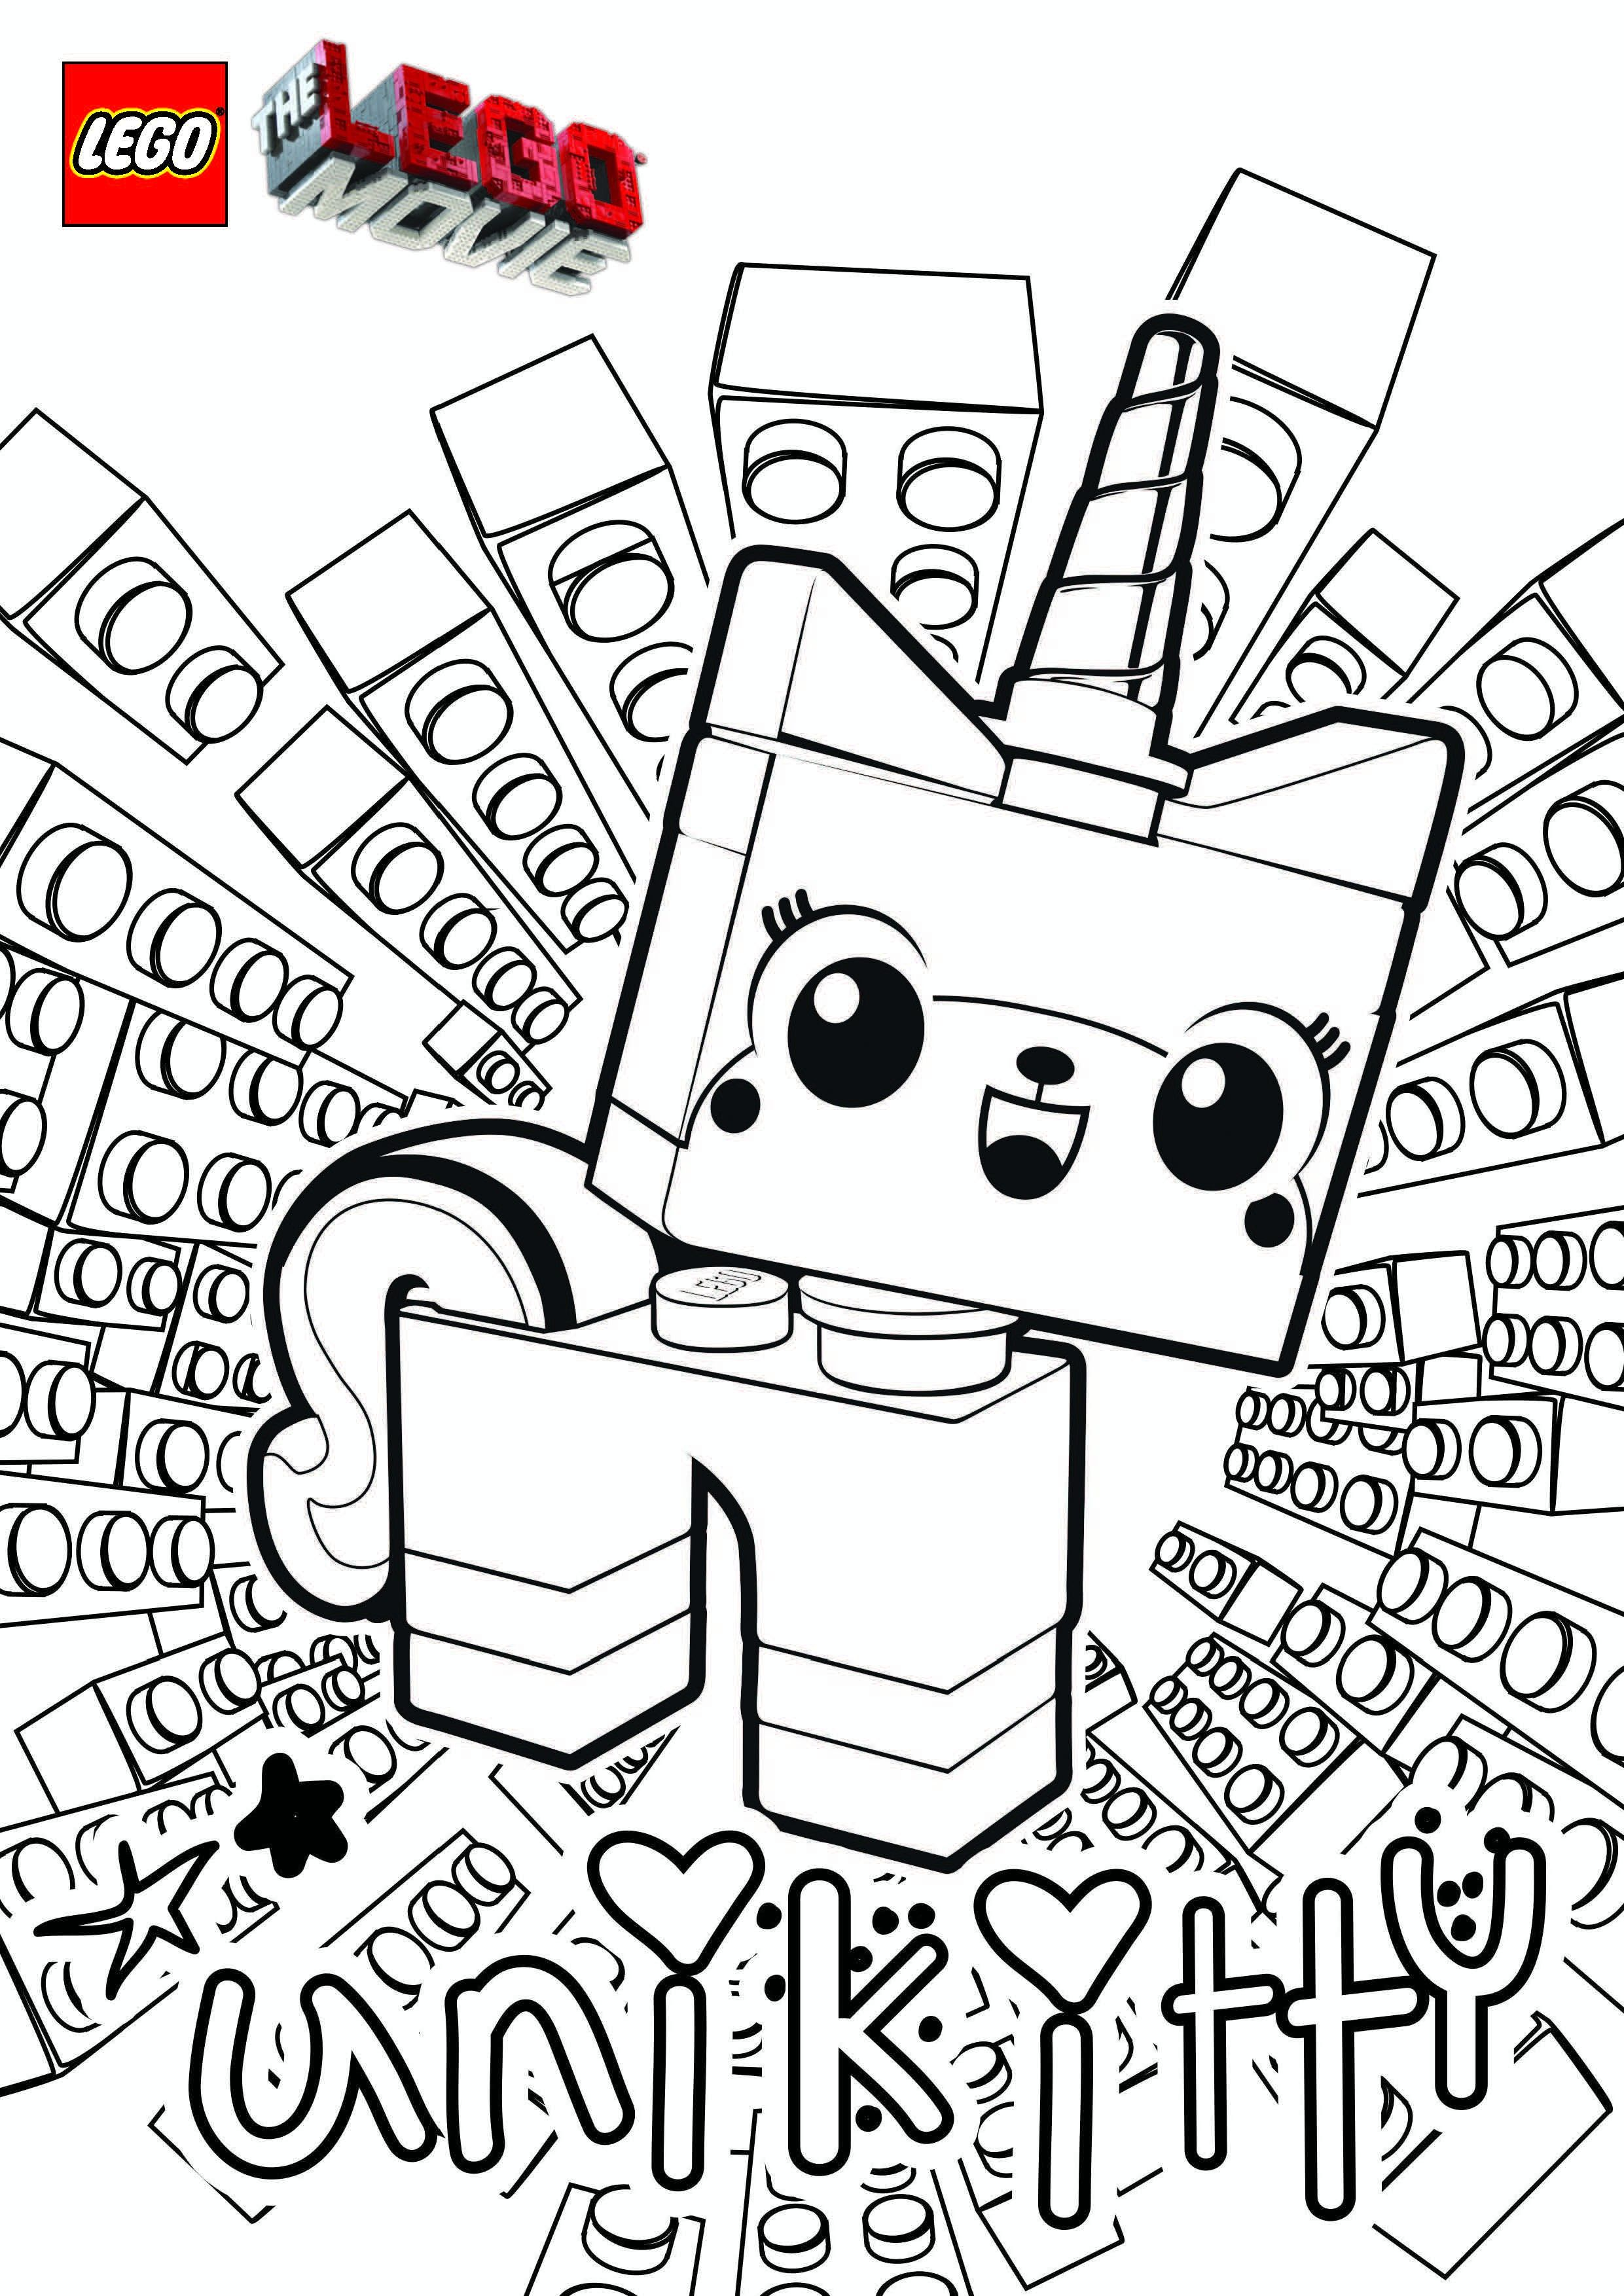 Princess Unikitty Coloring Pages Through the thousand